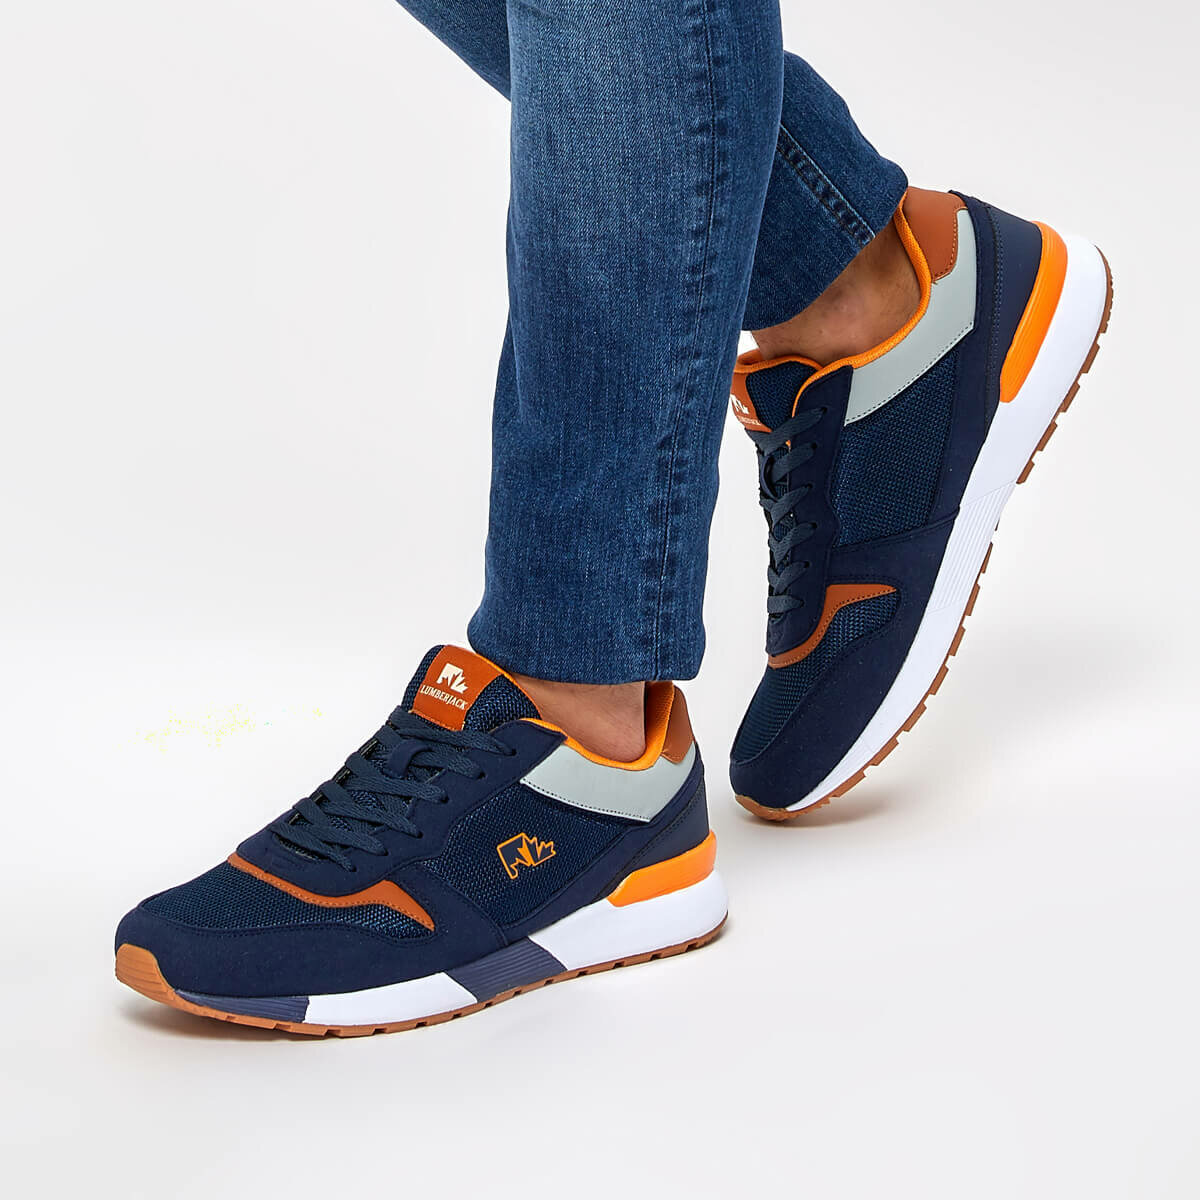 FLO ZELO Navy Blue Men 'S Sneaker Shoes LUMBERJACK